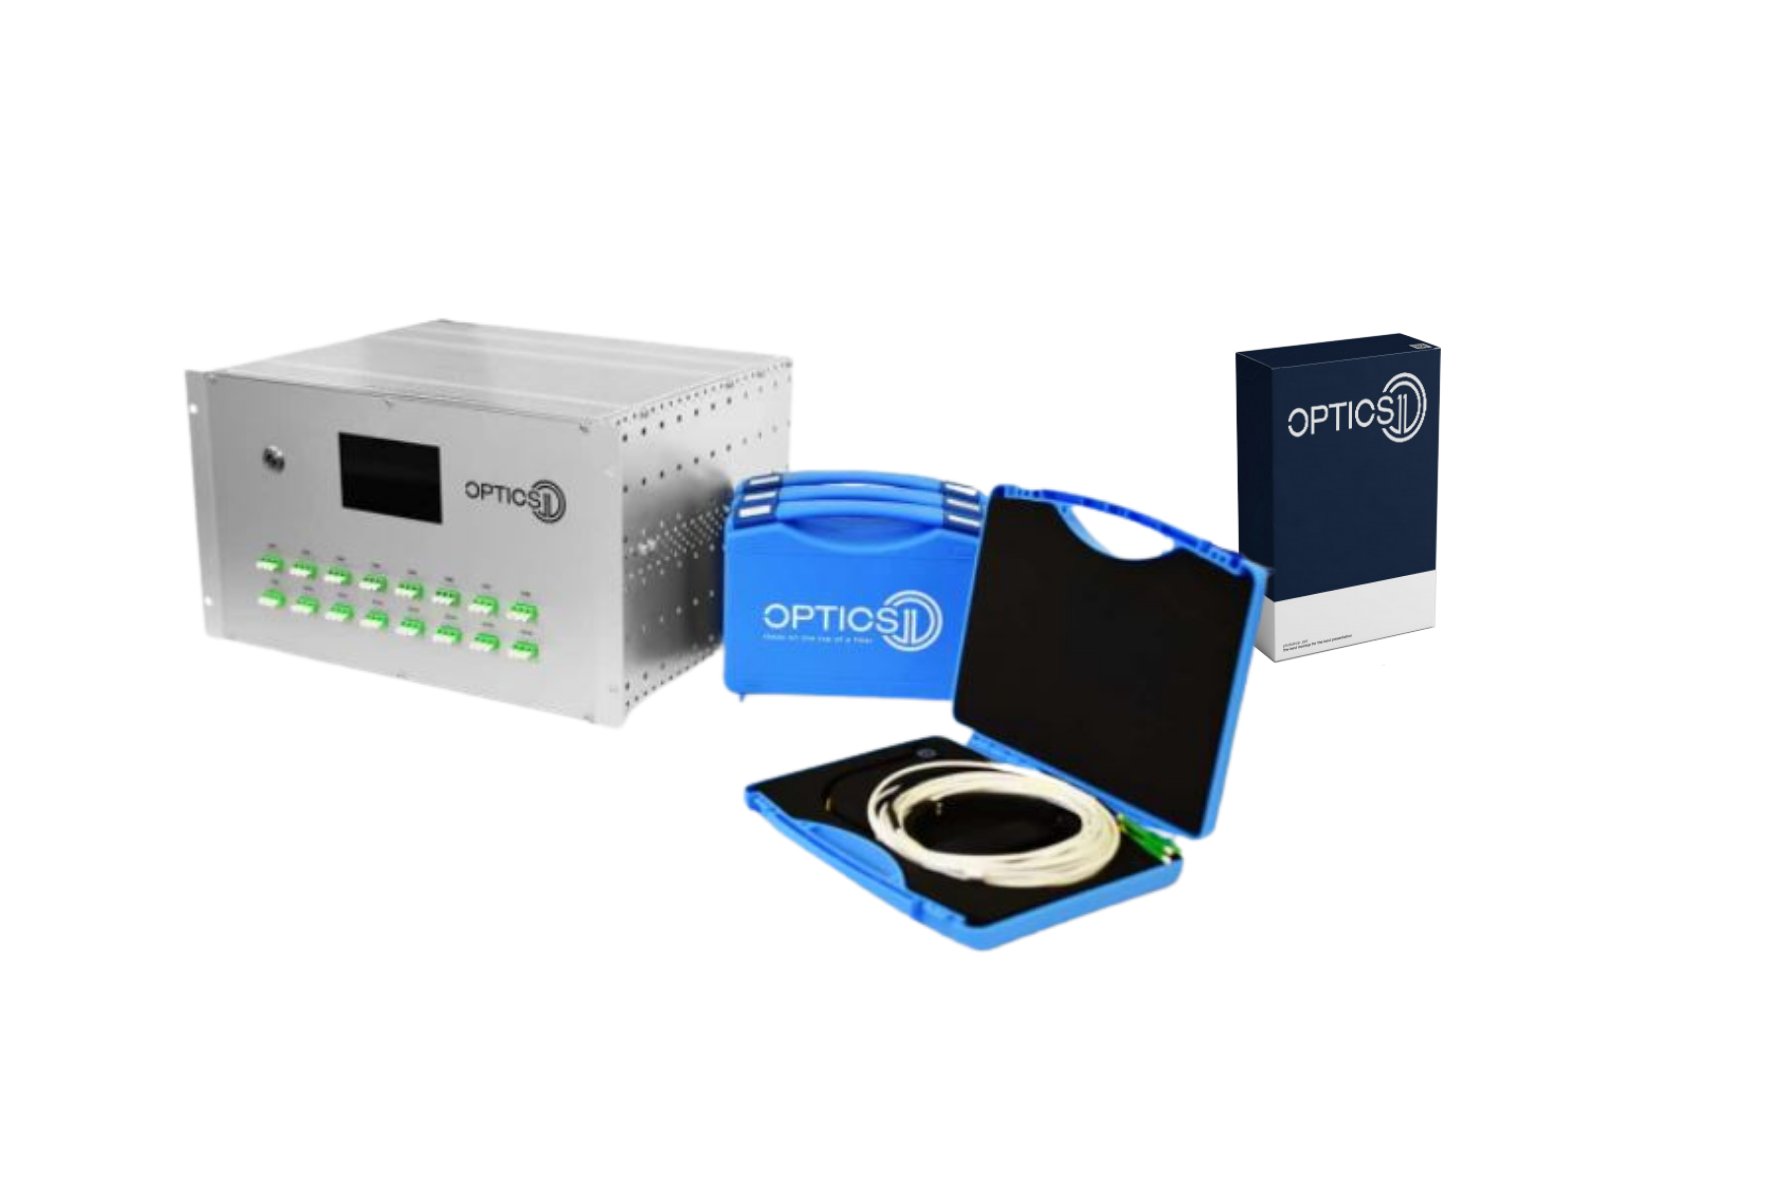 OptimAE PD monitoring system consists of an acquisition unit, AE fiber optic sensors and a dedicated software